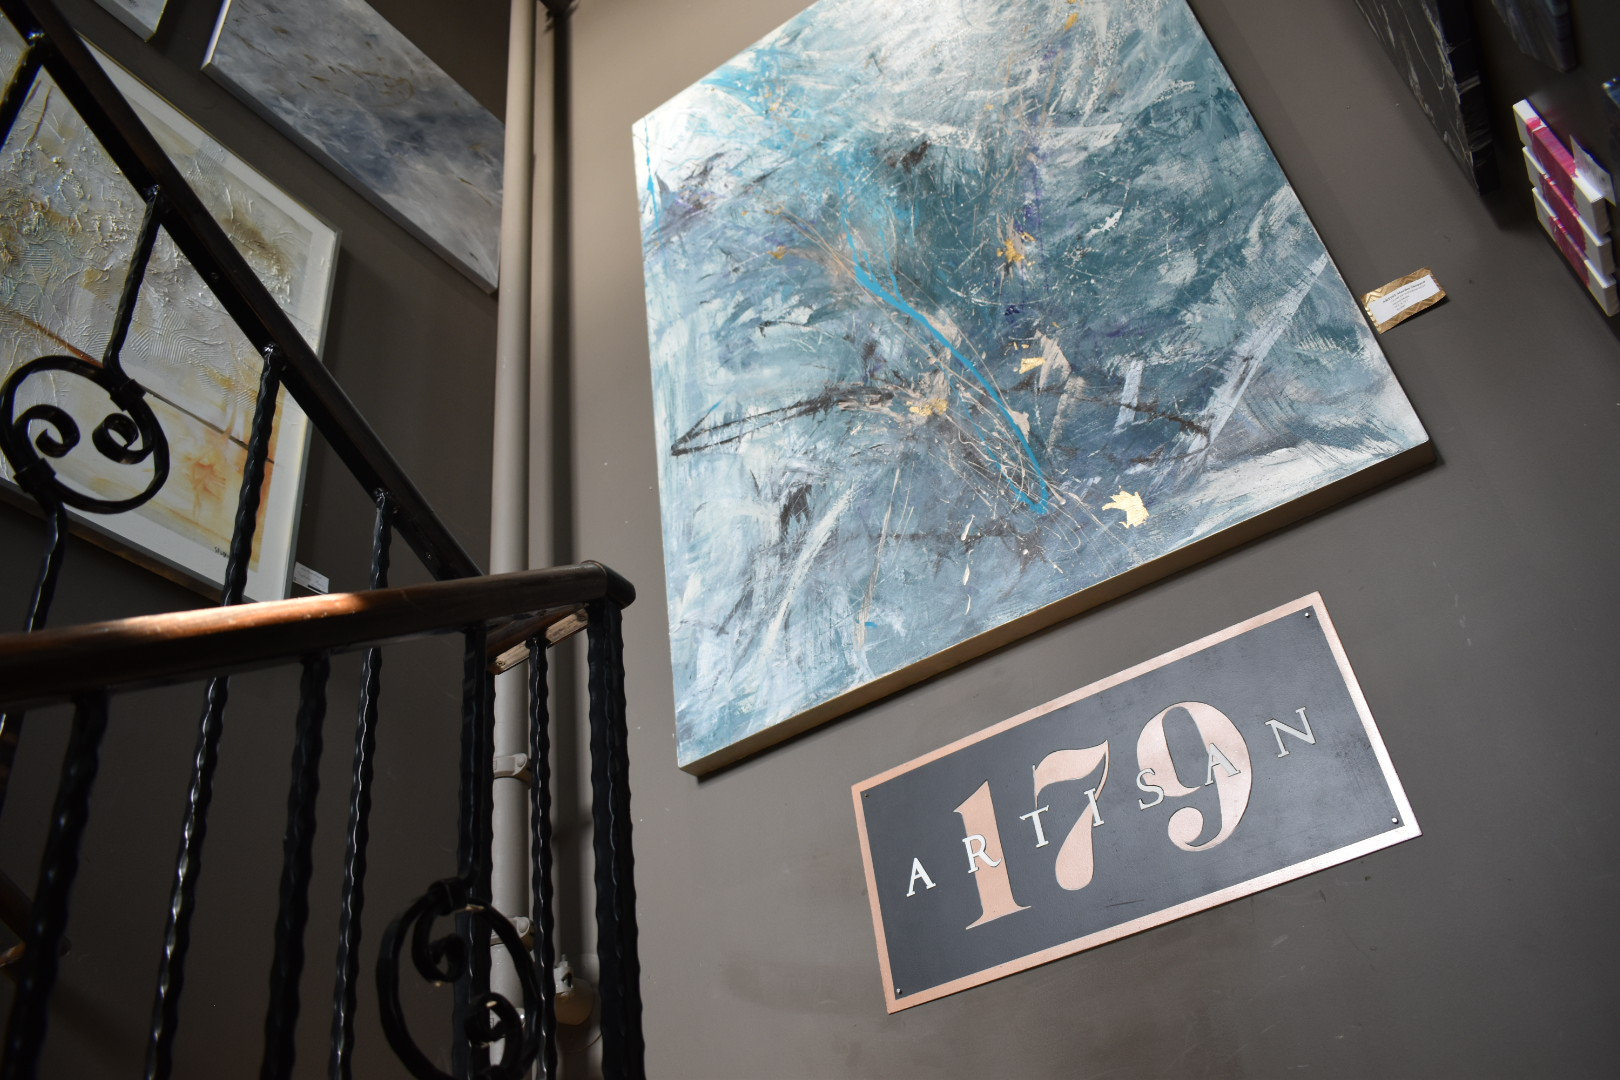 Stairwell with Artisan wall logo and various art pieces on the wall